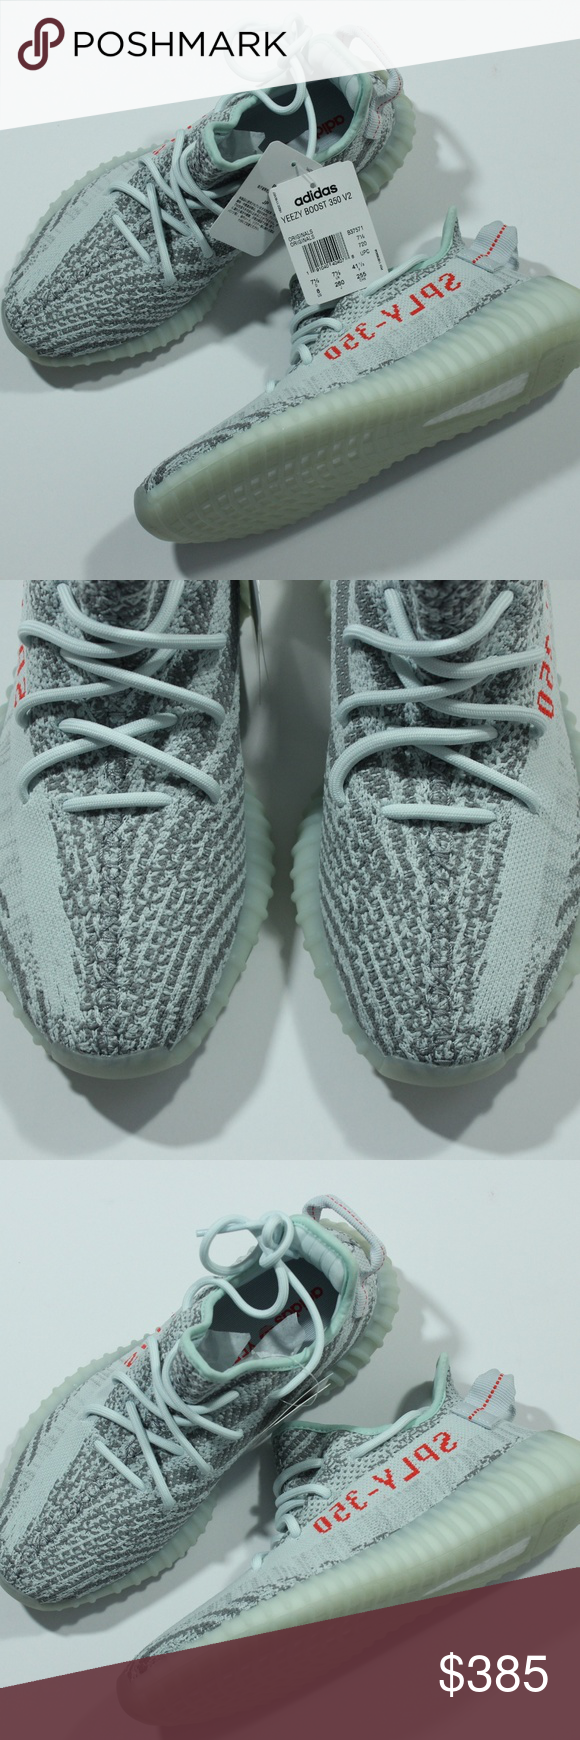 56c2eec3392 Adidas Yeezy Boost 350 V2 Blue Tint Grey B37571 Authentic Adidas Yeezy  Boost 350 V2 Blue